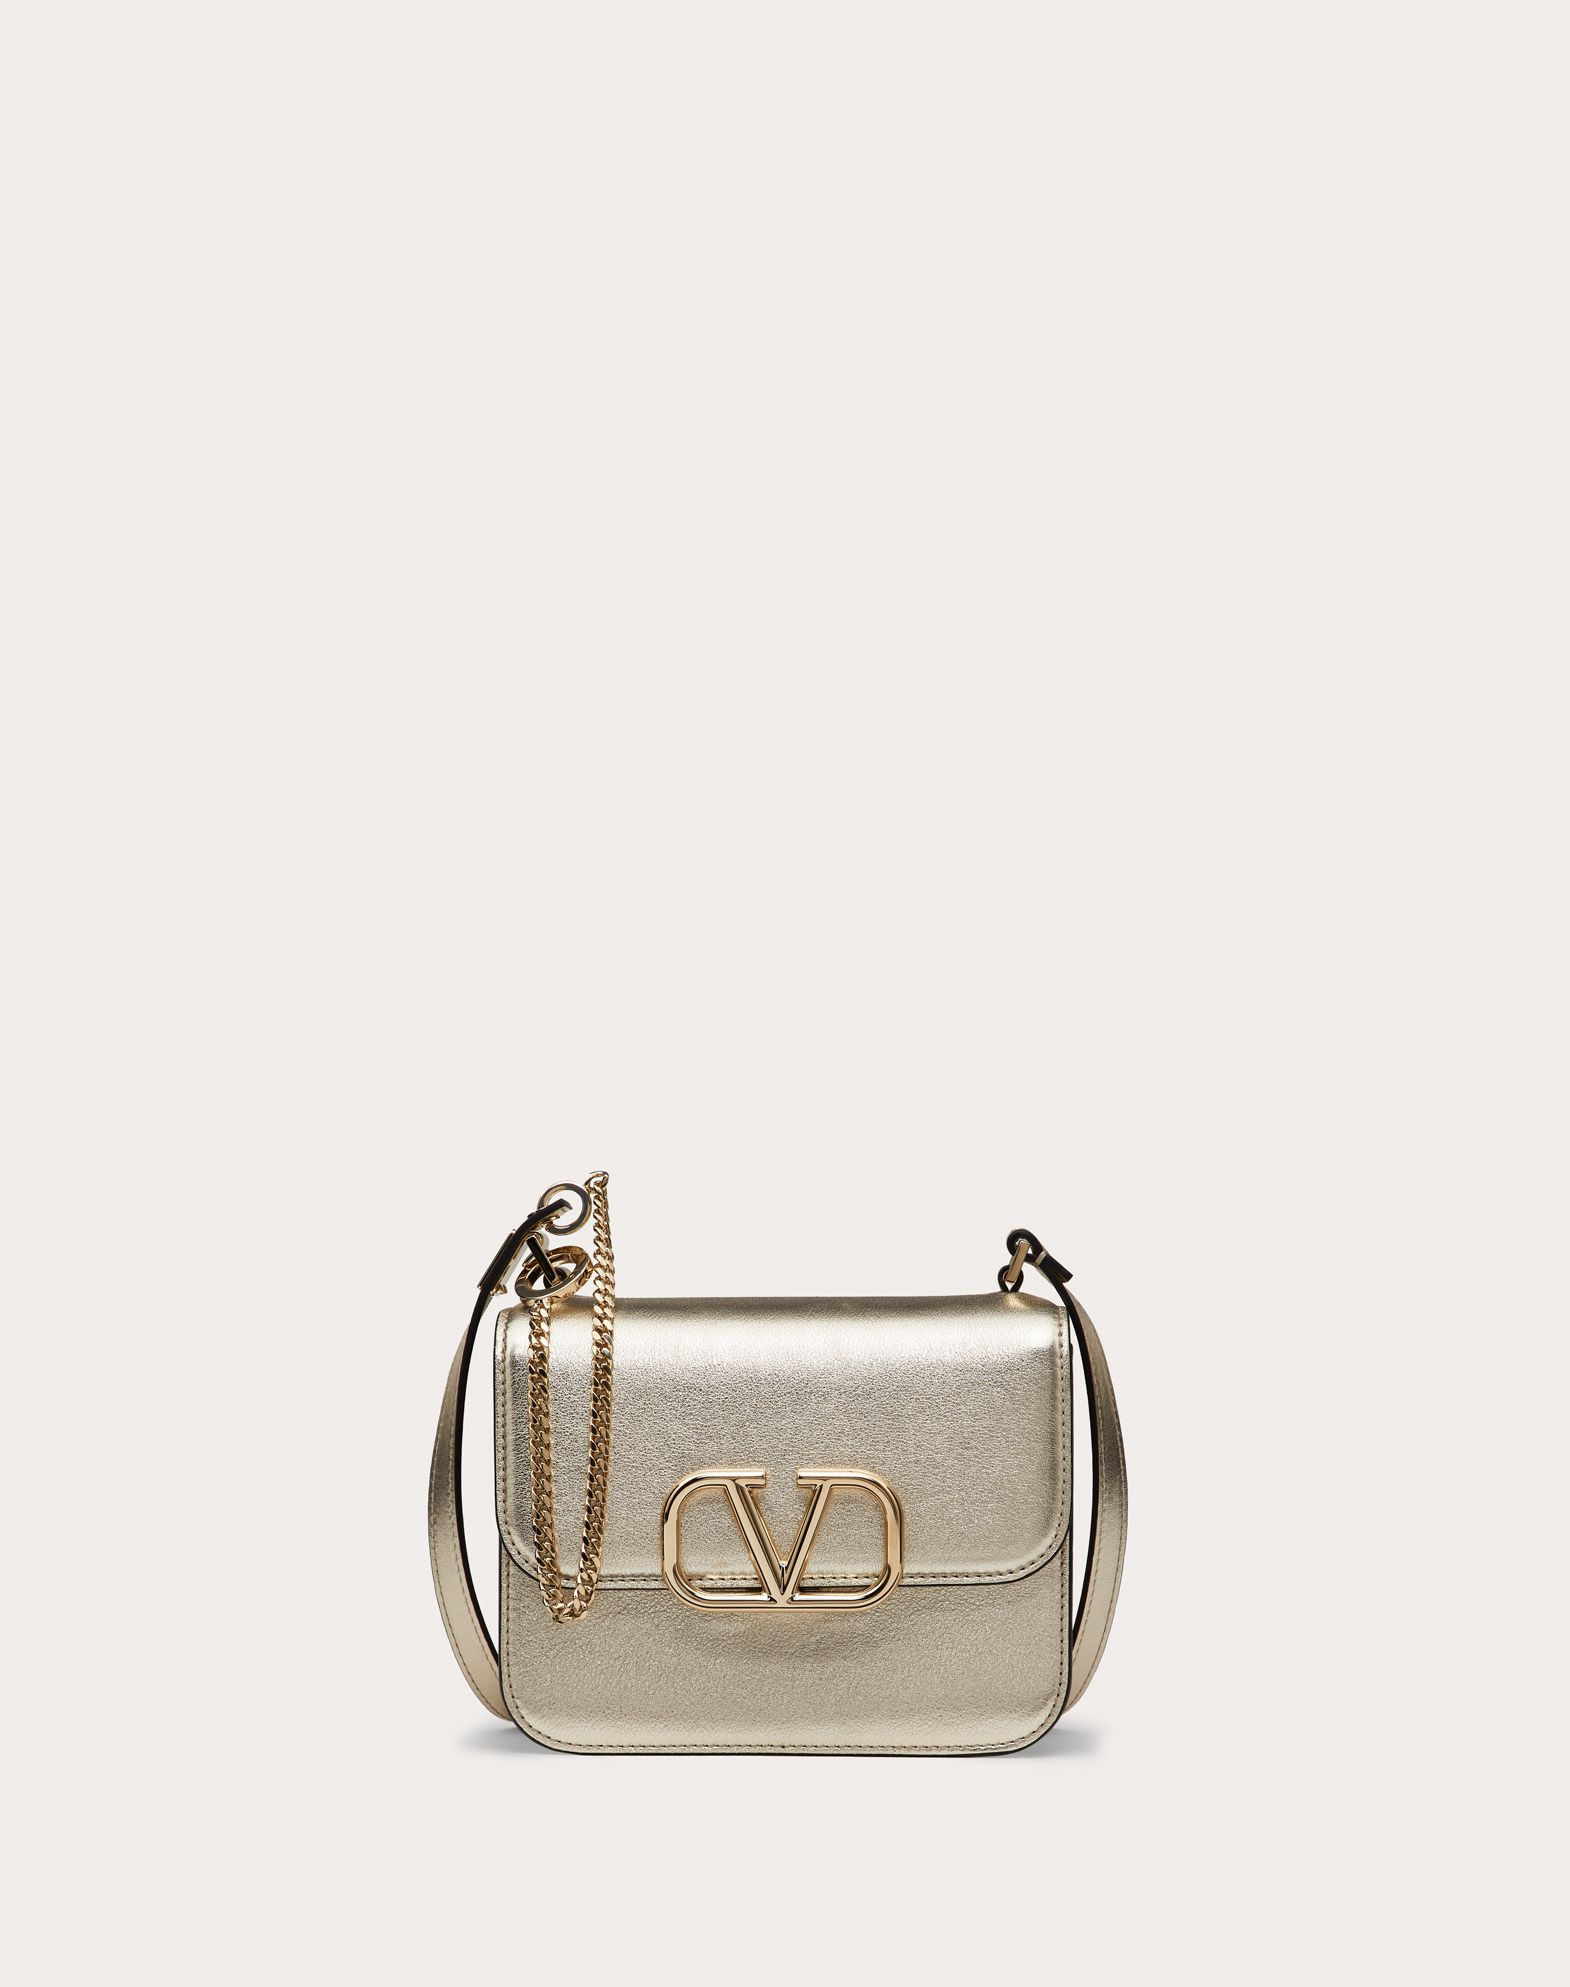 Small VSLING Shoulder Bag in Metallic Craquelure-Effect Calfskin